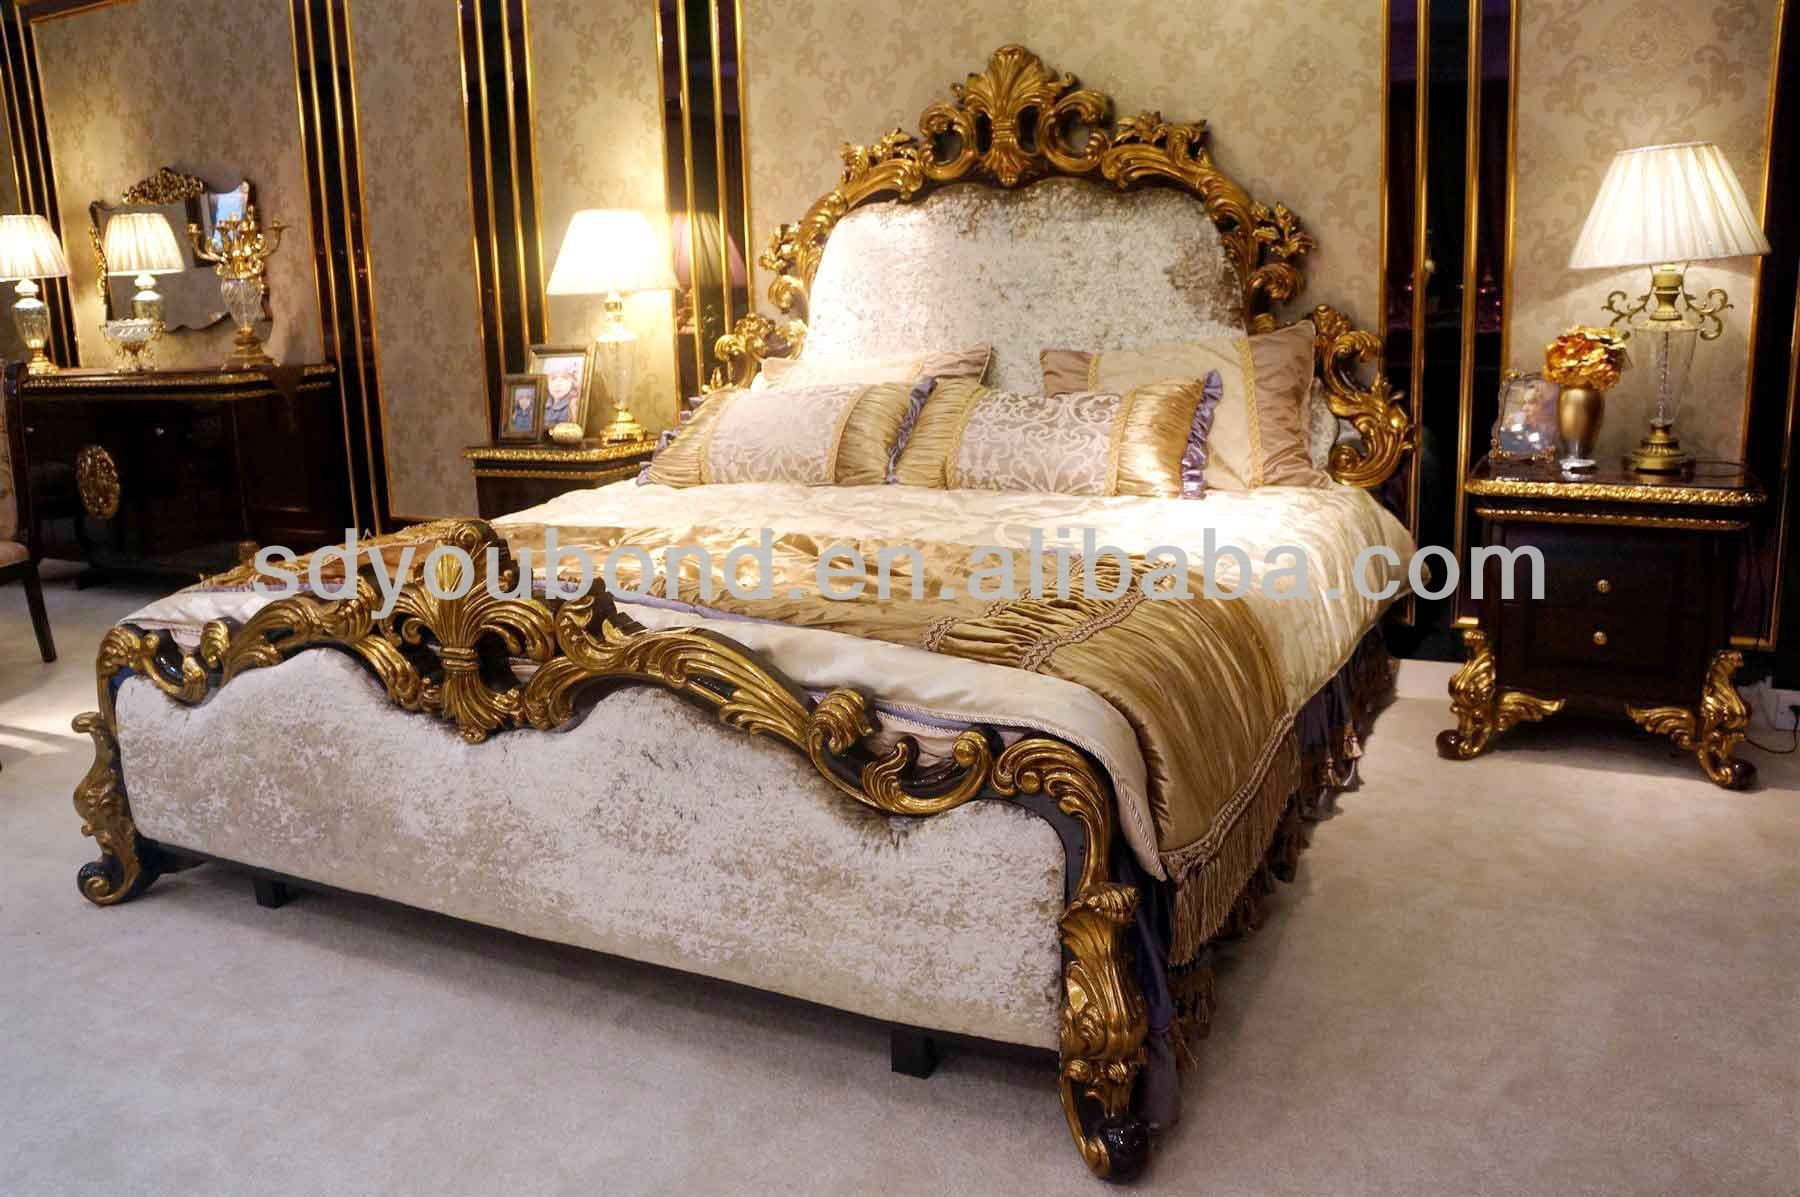 0063 2014 Italy Design Wooden Carving Royal Bedroom Furniture Expensive Bedroom Furniture Buy Italy Classic Bedroom Interior Design Bedroom Bed Furniture Set